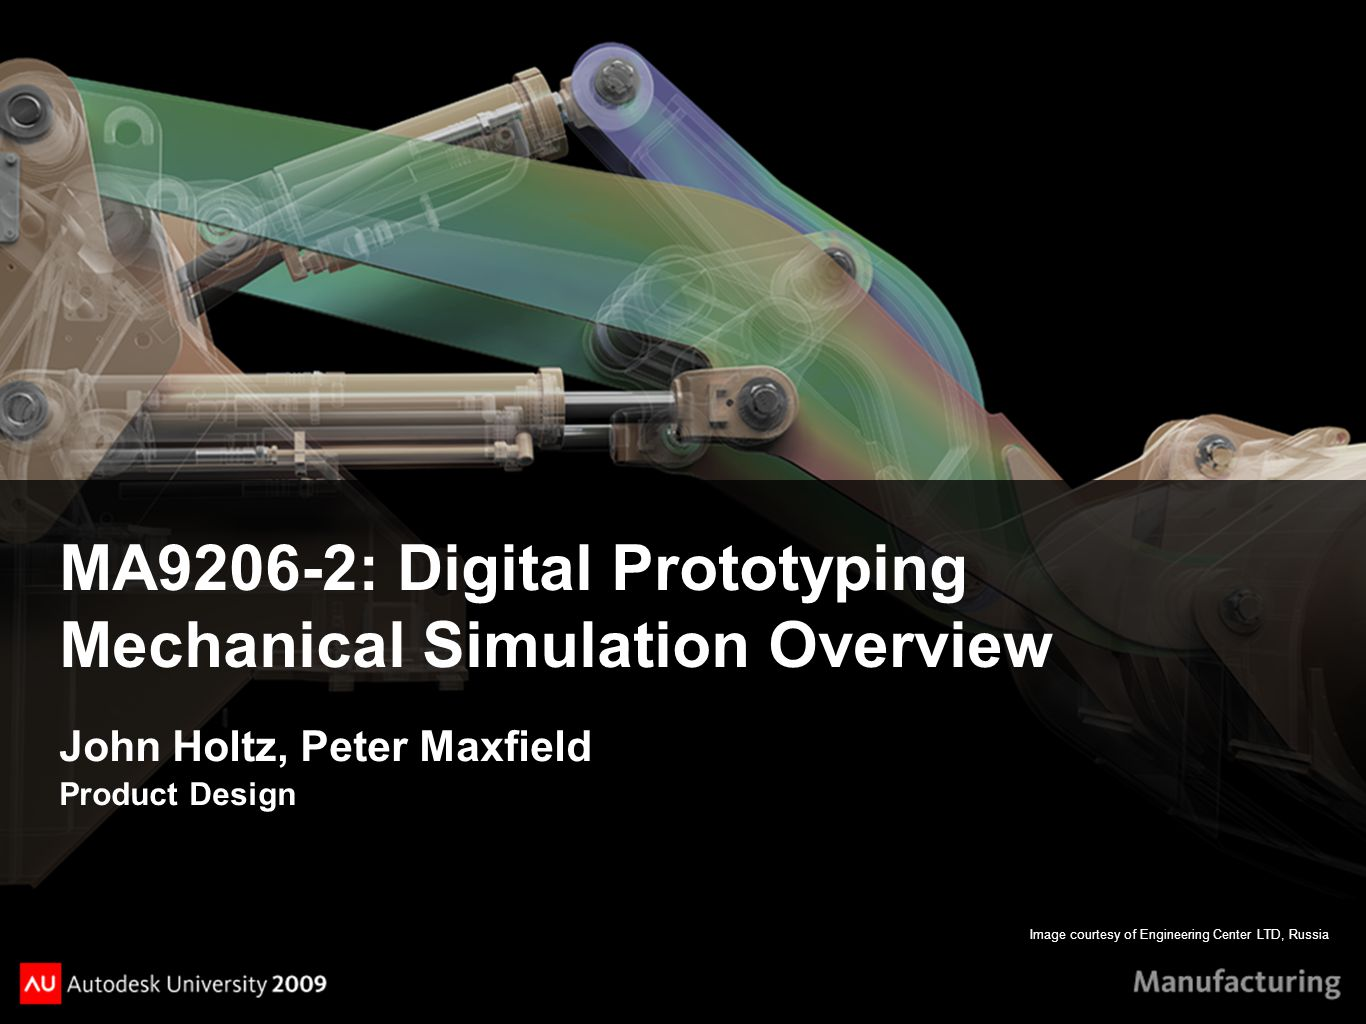 Image courtesy of Engineering Center LTD, Russia MA9206-2: Digital Prototyping Mechanical Simulation Overview John Holtz, Peter Maxfield Product Design